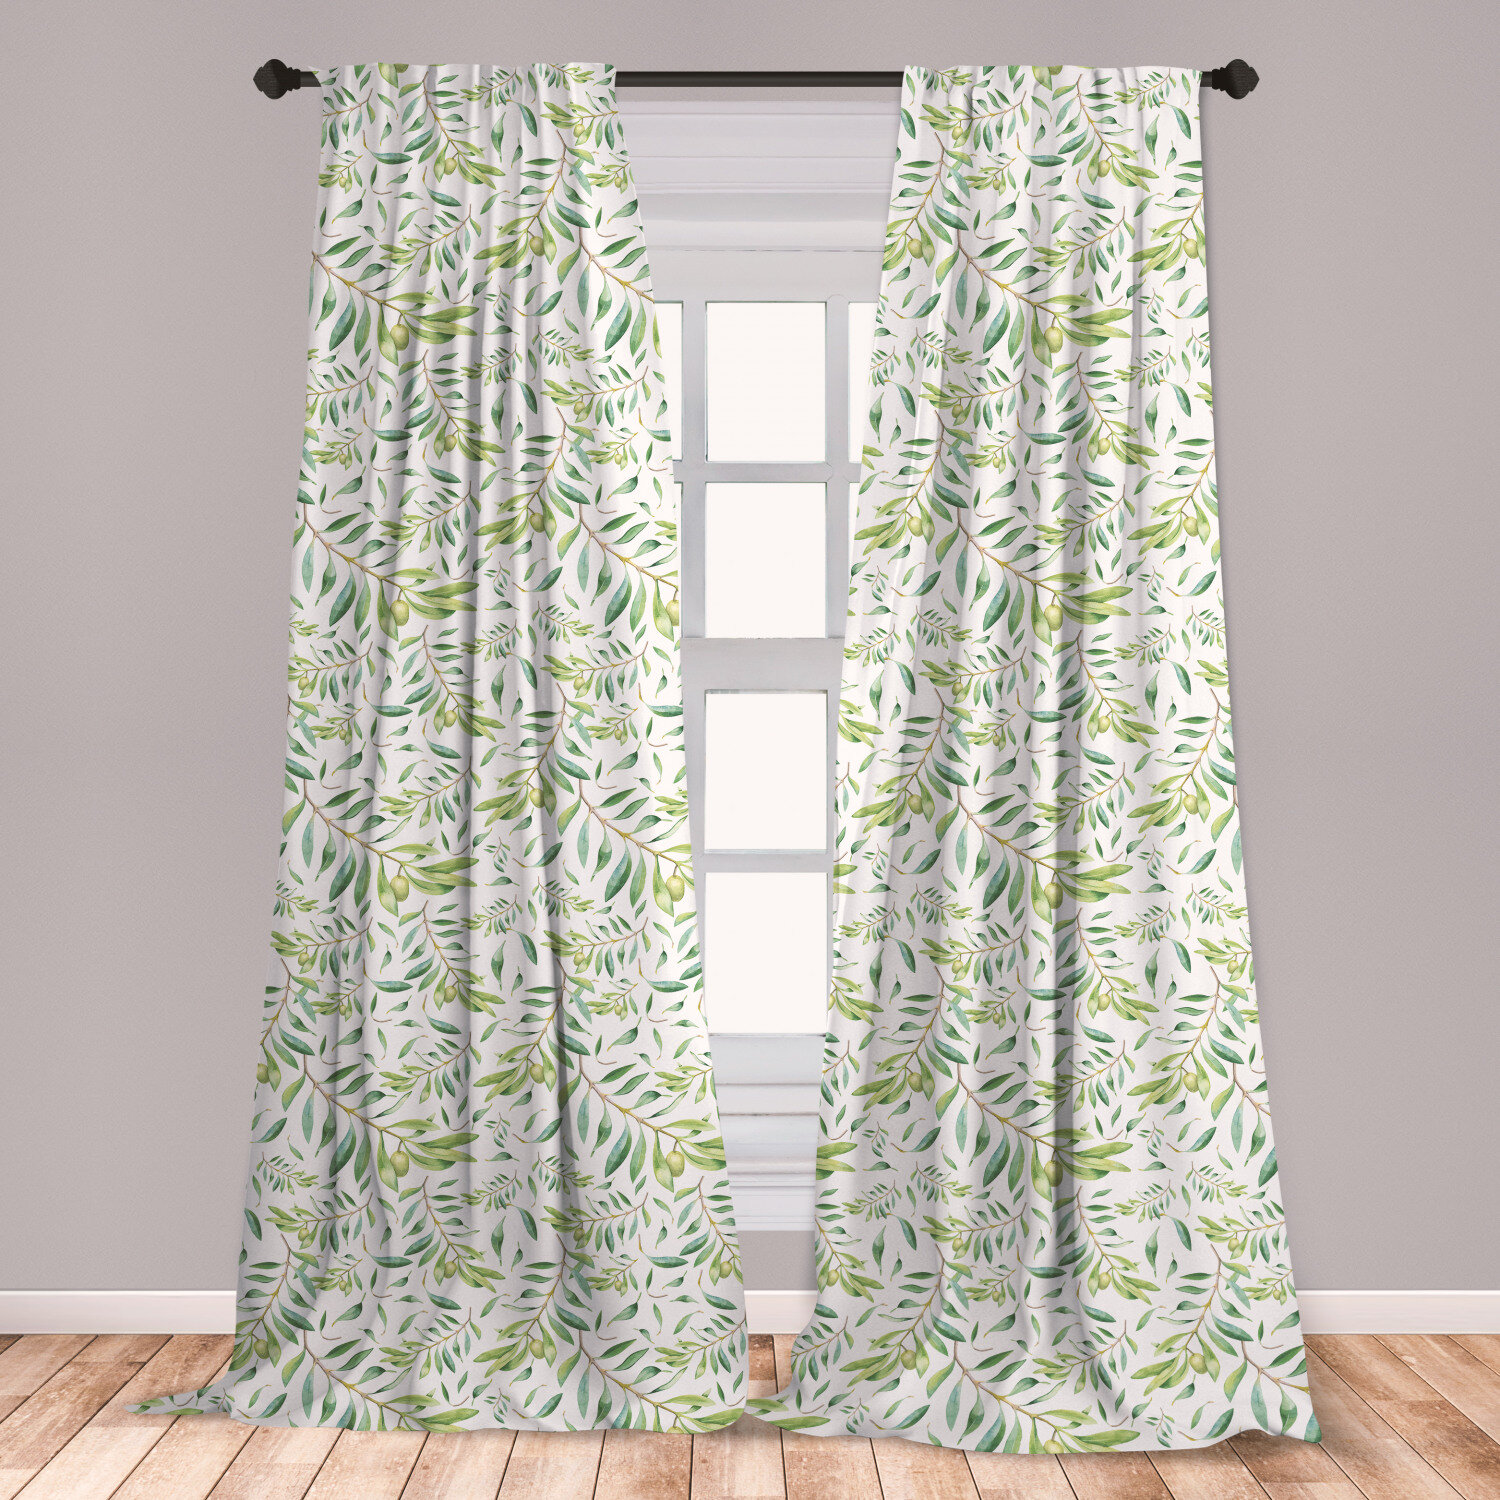 East Urban Home Ambesonne Green Leaf 2 Panel Curtain Set Watercolor Style Olive Branch Mediterranean Tree Organic Lightweight Window Treatment Living Room Bedroom Decor 56 X 63 Avocado Green Wayfair